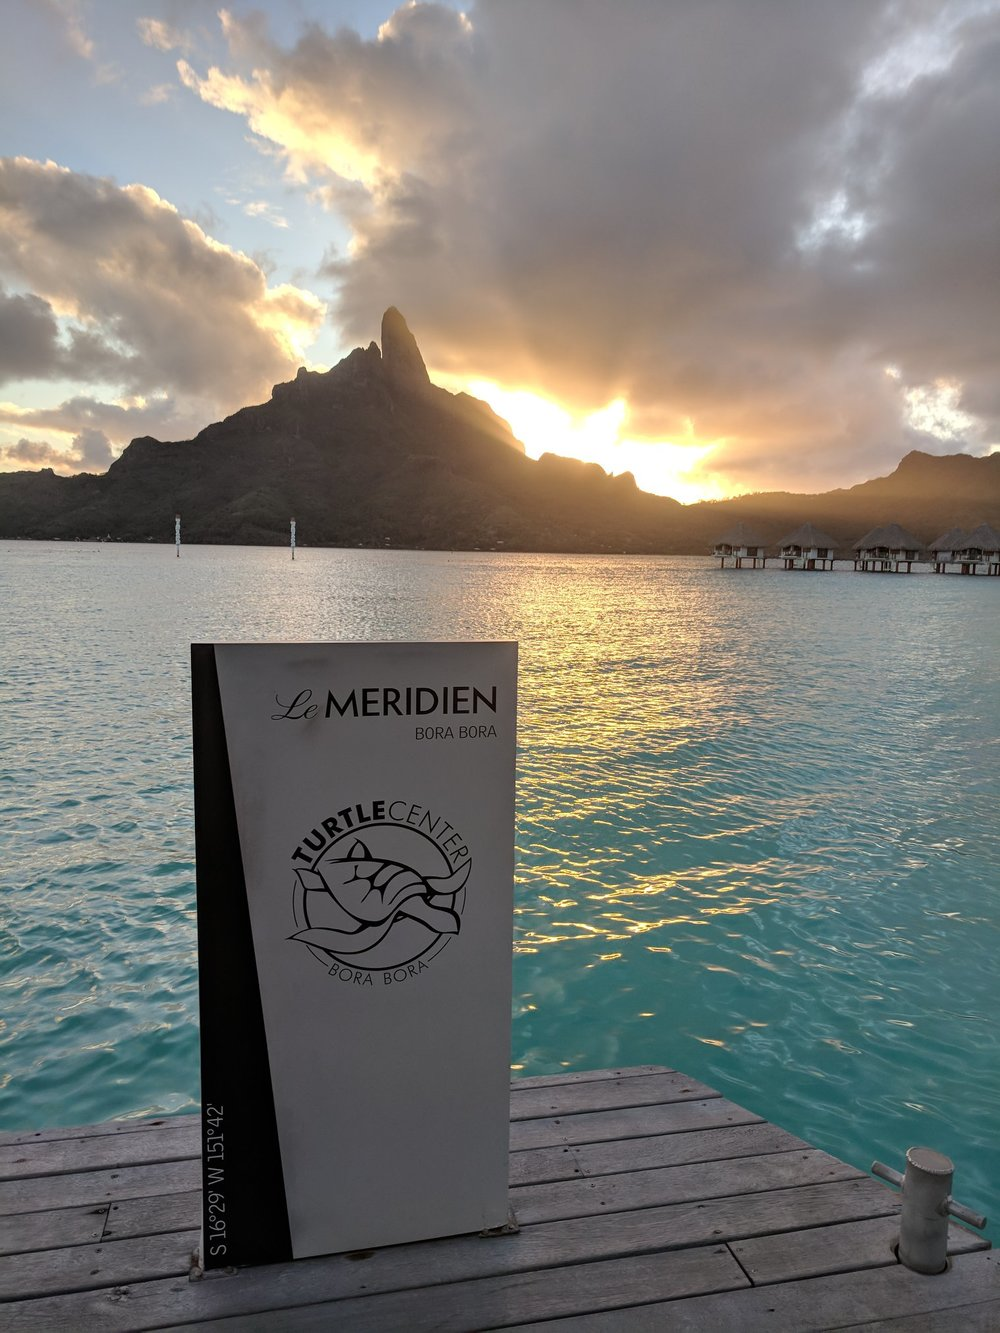 Arrotti Honeymoon Bora Bora Le Meridien.jpg